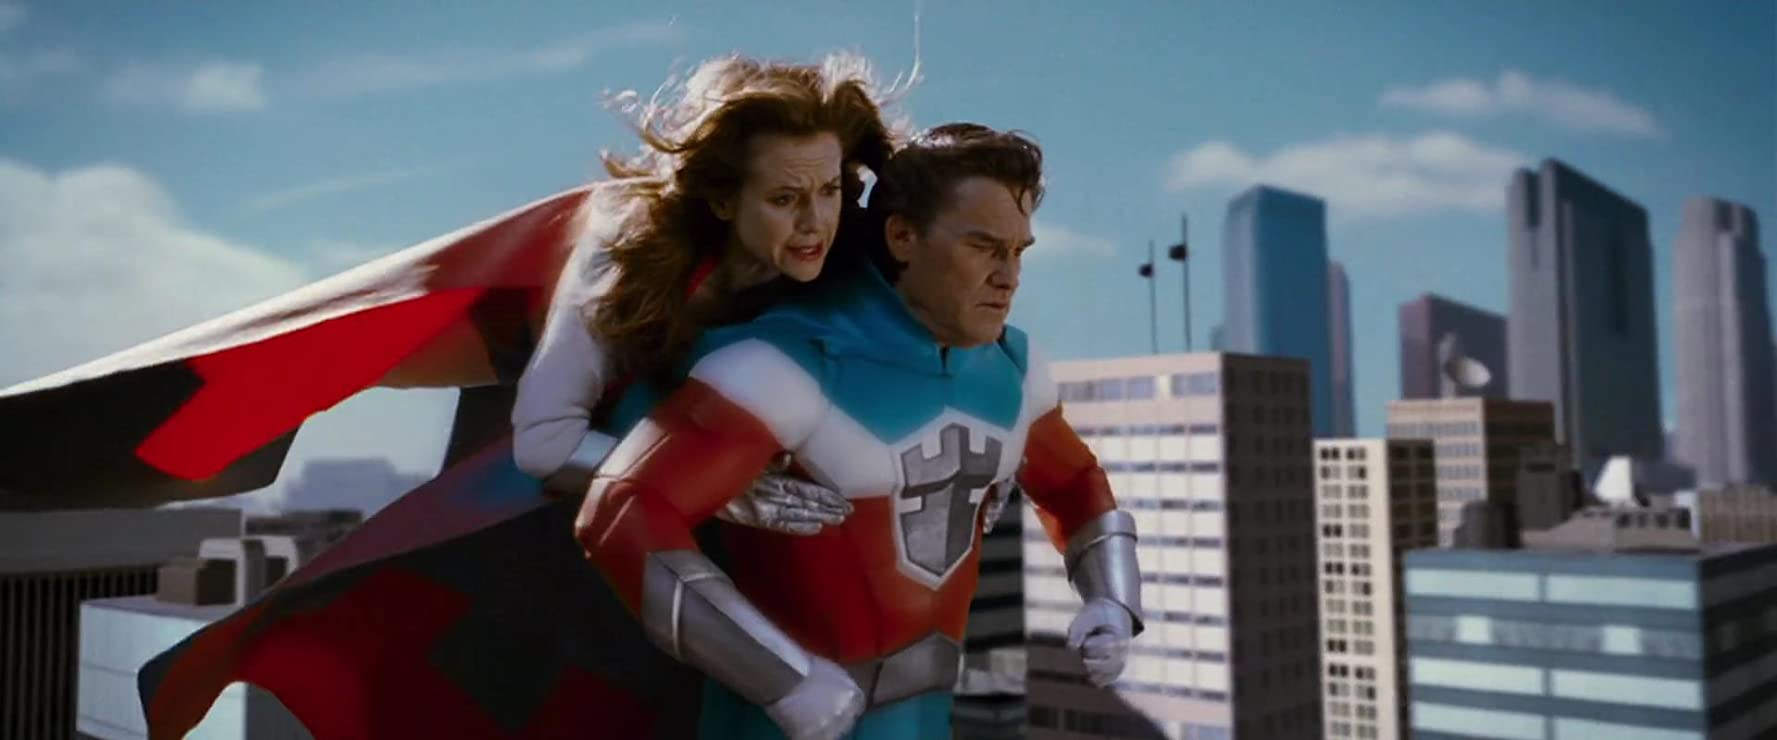 Kelly Preston and Kurt Russell in Sky High (2005)